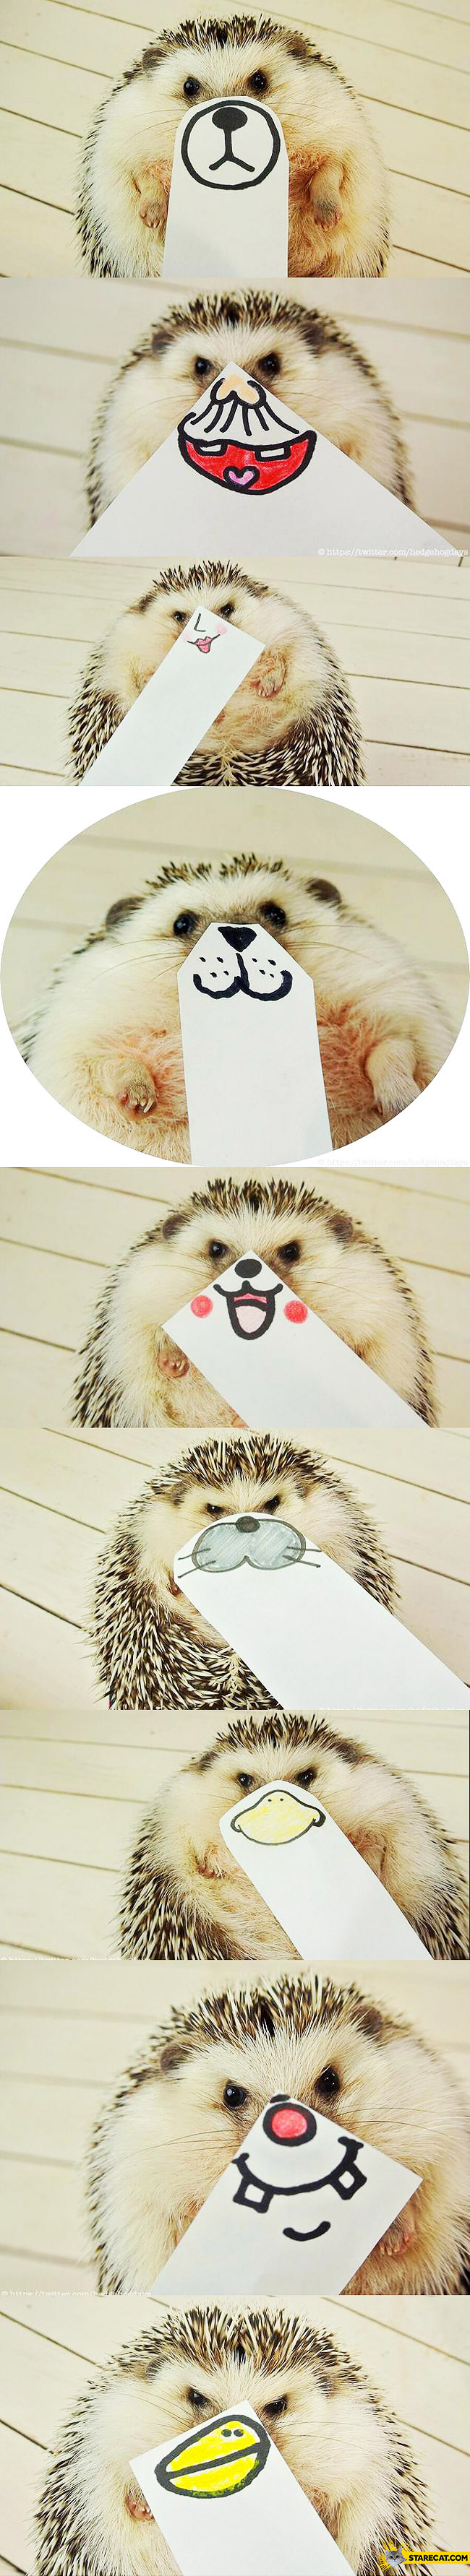 Hedgehog paper faces